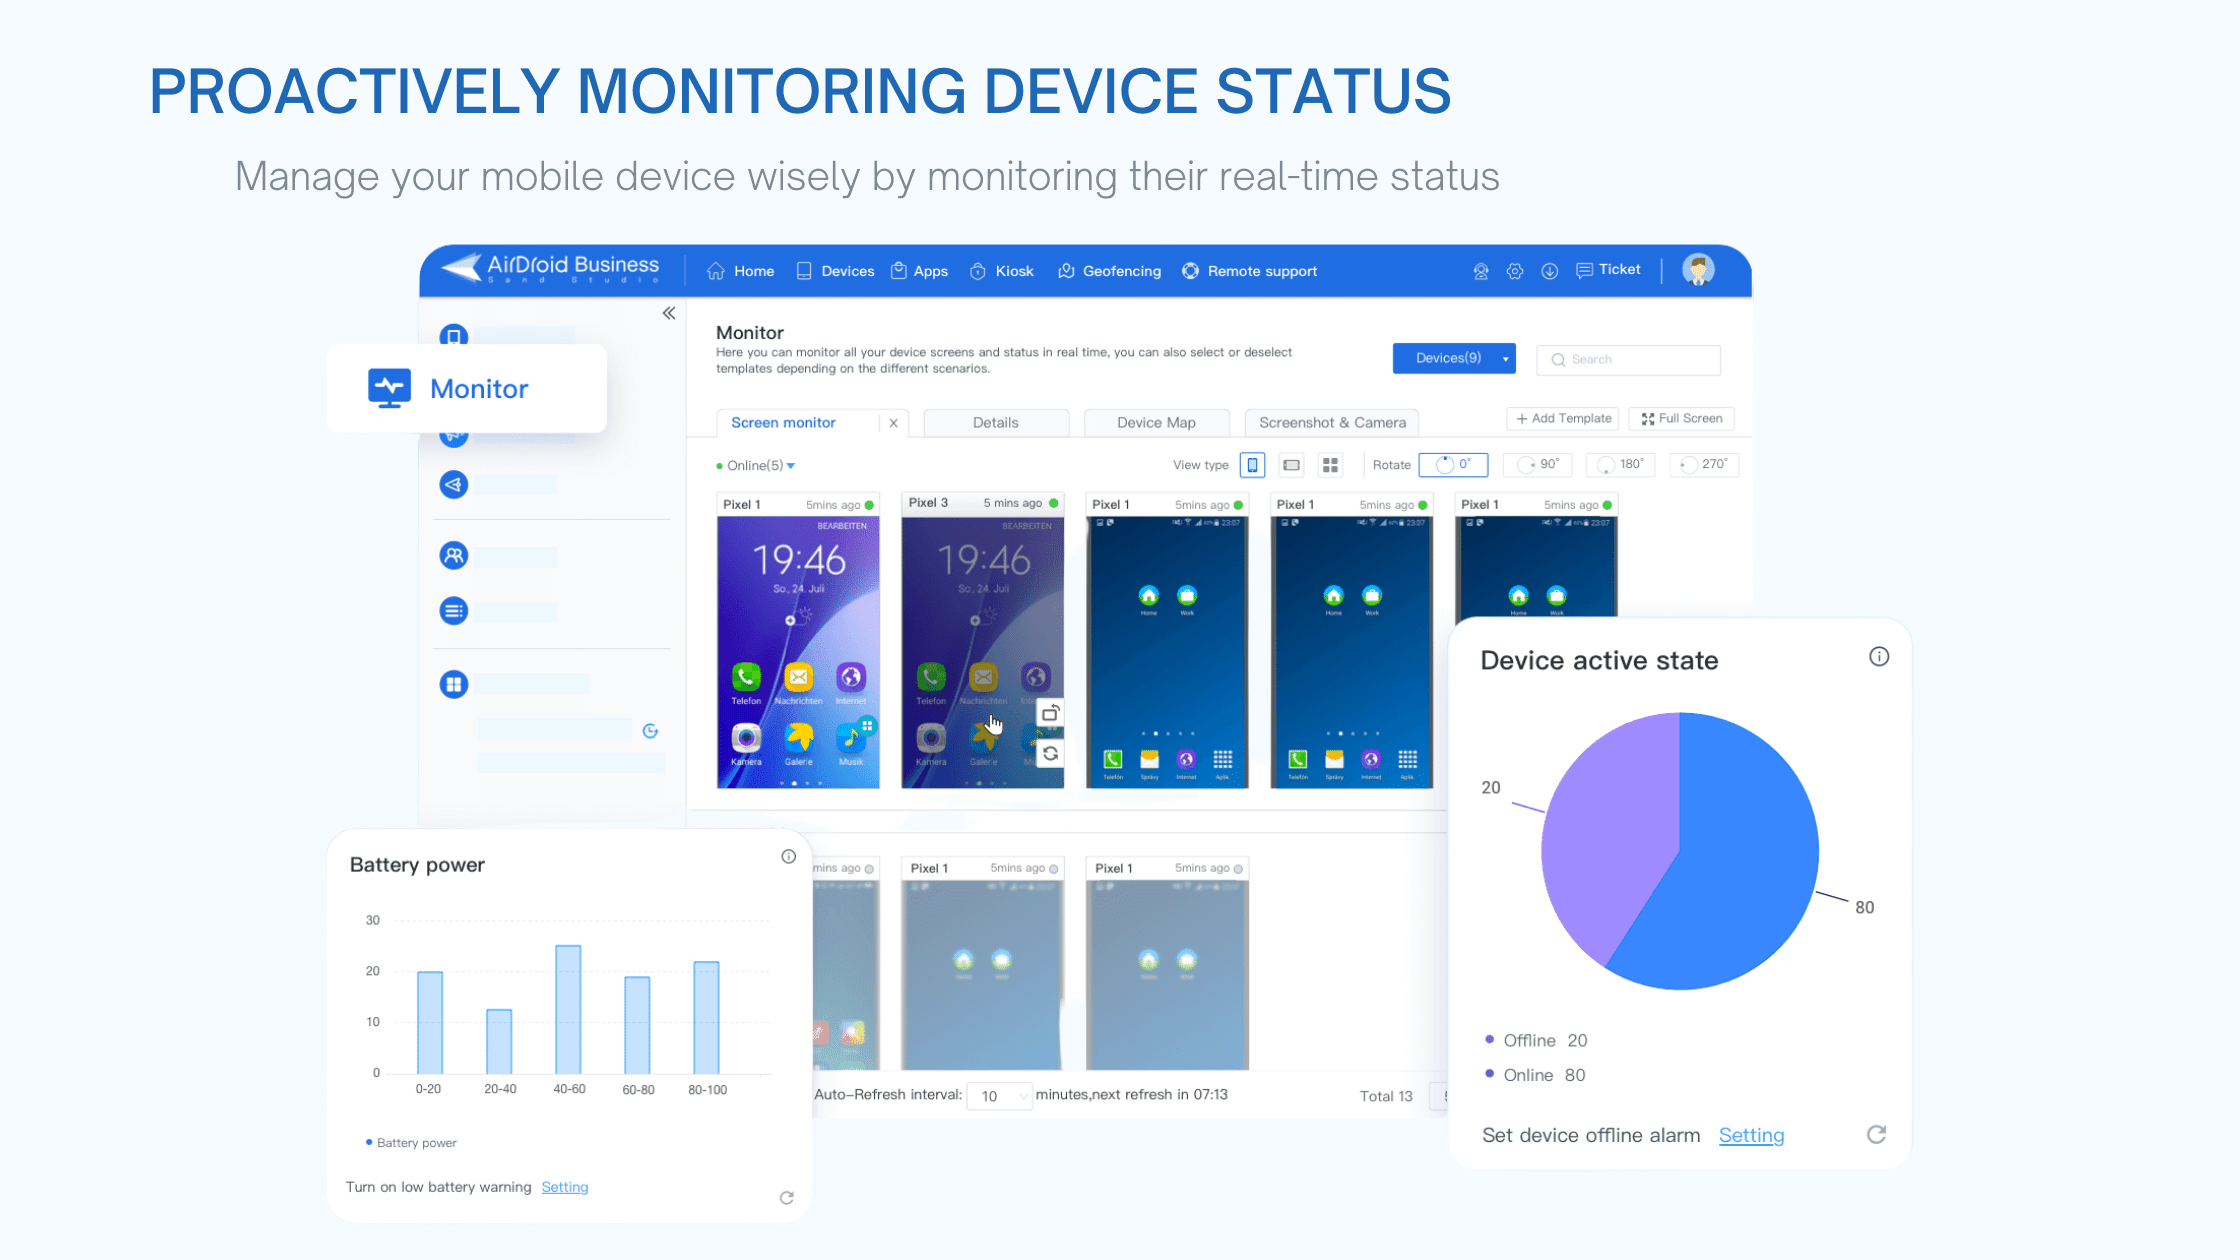 AirDroid Business Manage your devices with proactive monitoring